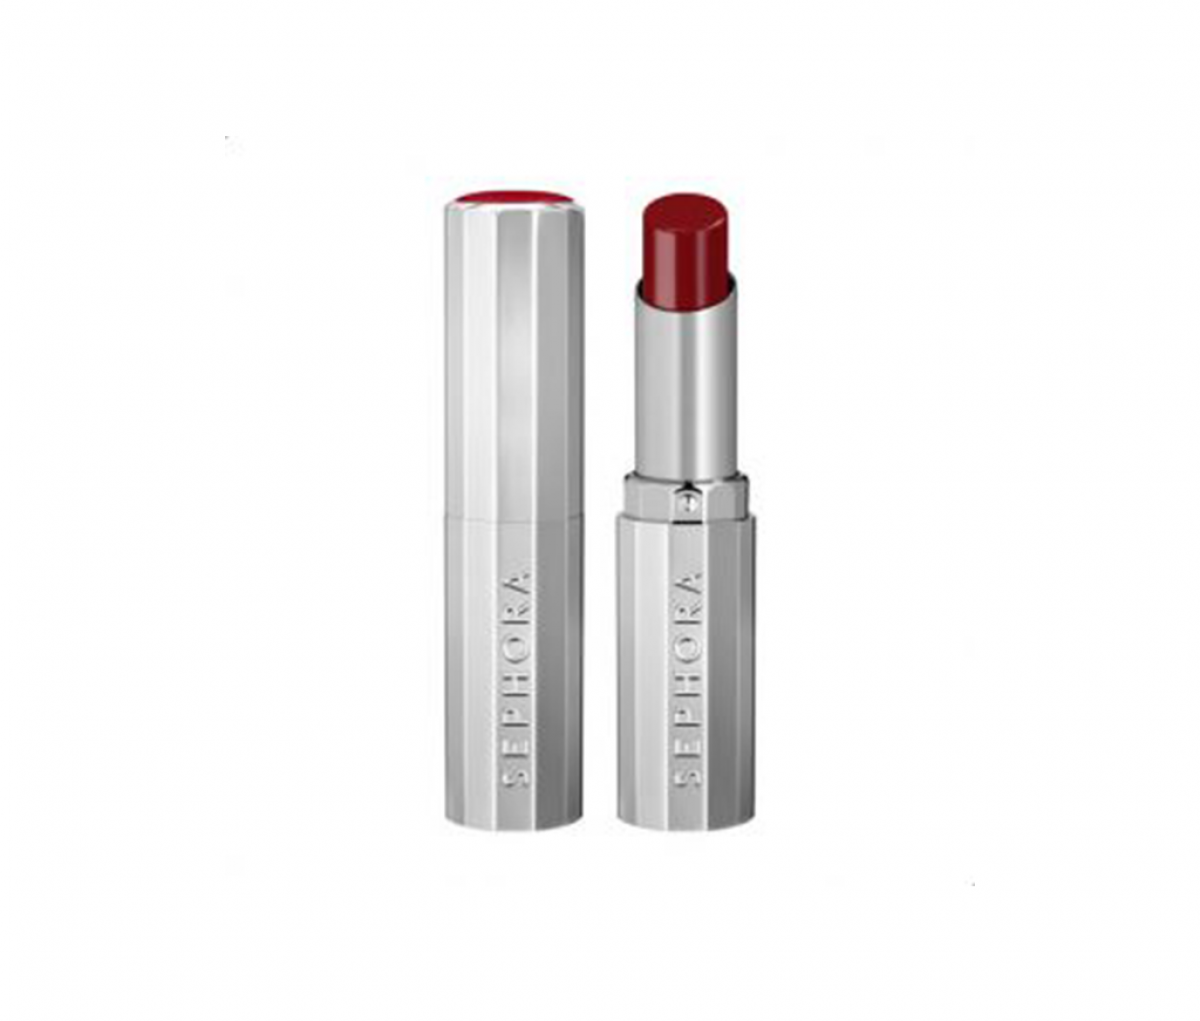 SEPHORA ROUGE LACQUER LIPSTICK L02 Wicked Smart